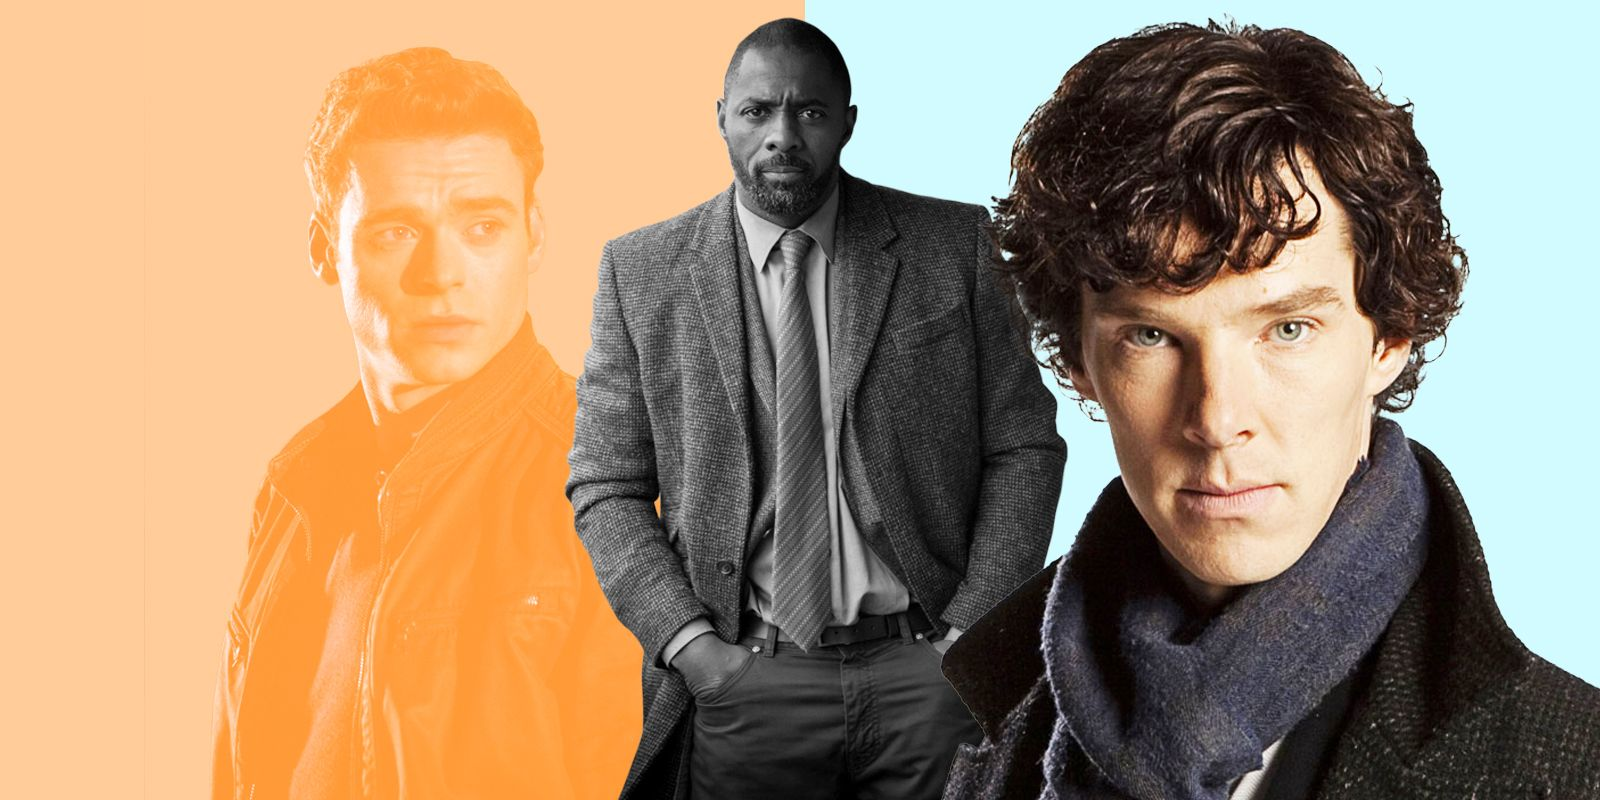 Best British Crime TV Shows - 8 British Crime Dramas You Need to